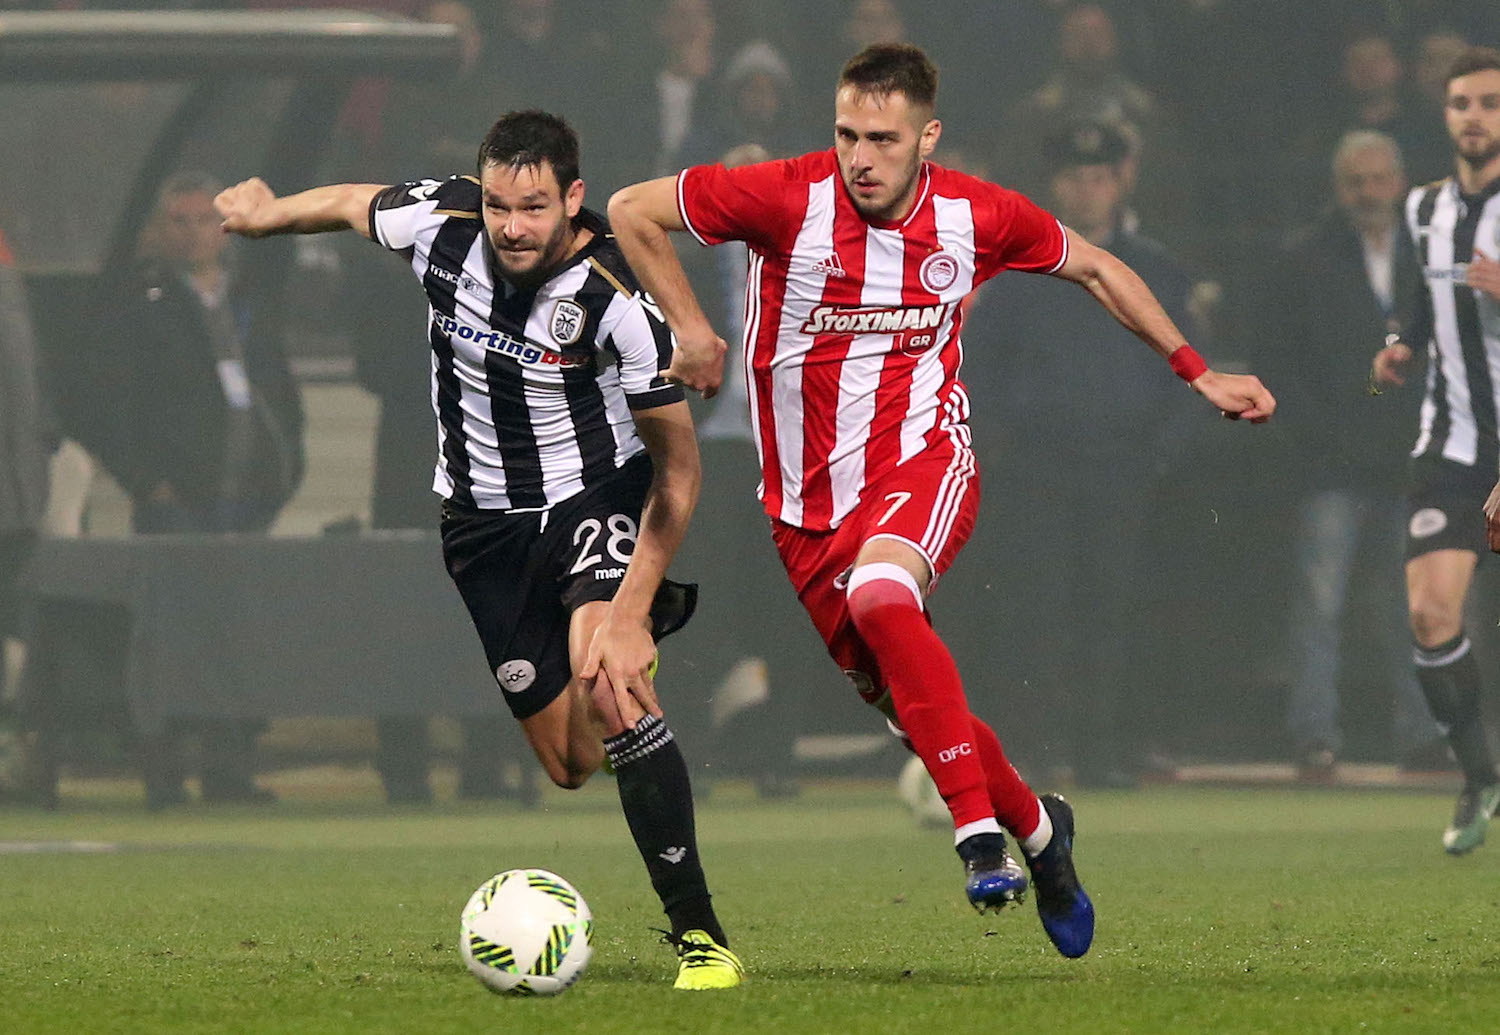 PAOK – Olympiacos 2-0